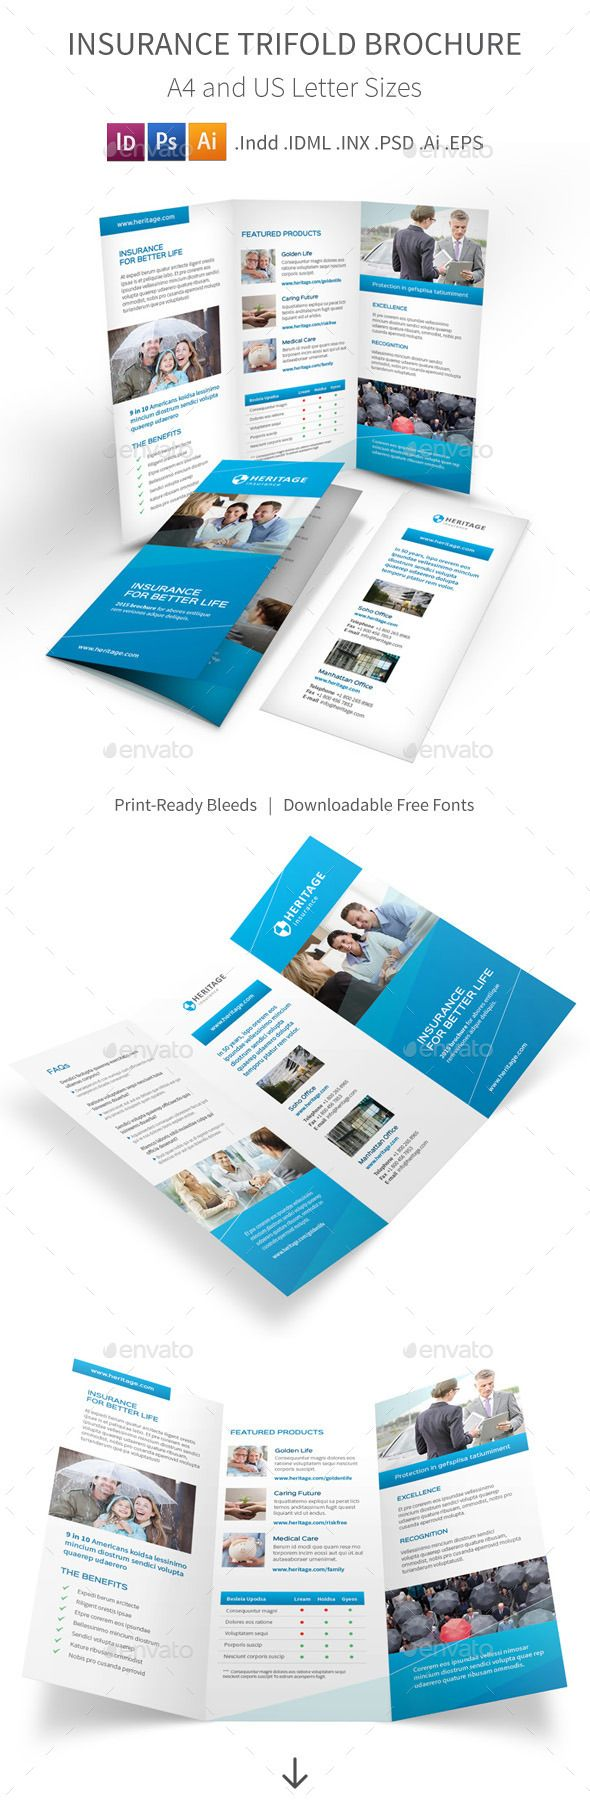 Insurance company trifold brochure template design download http insurance company trifold brochure template design download httpgraphicriveriteminsurance company trifold brochure12006358refksioks altavistaventures Image collections